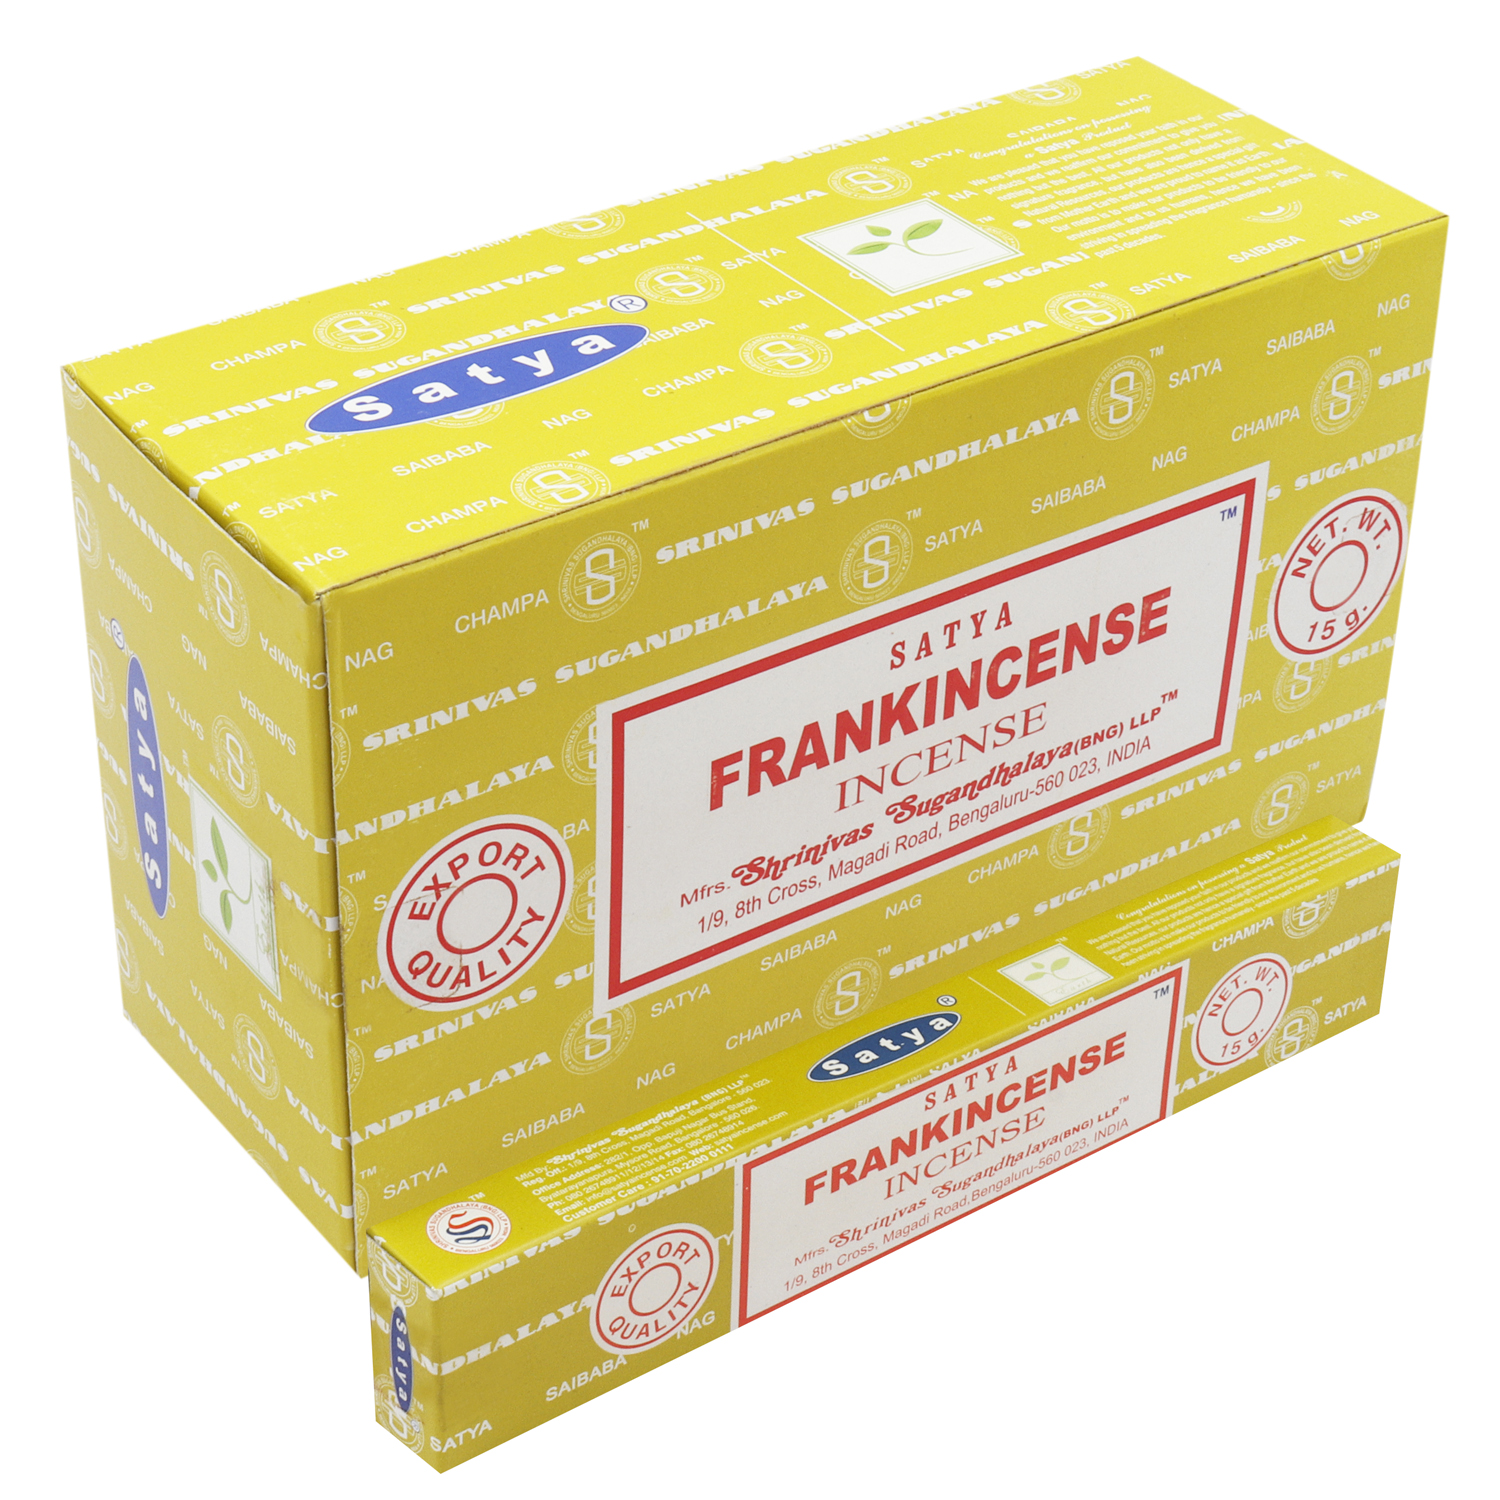 SATYA FRANKINCENSE 15 GM